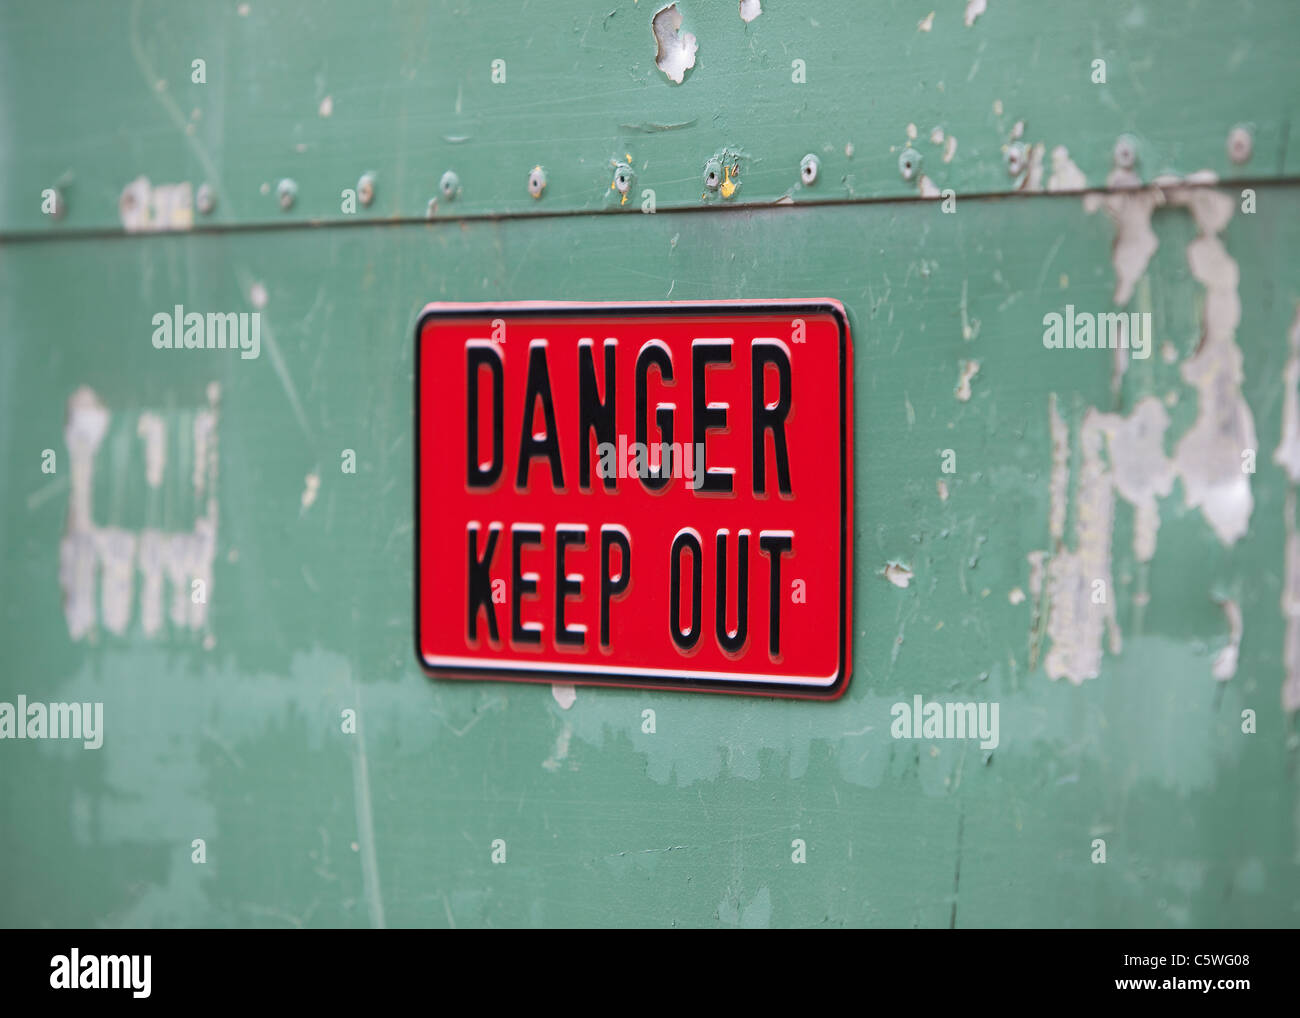 United Kingdom, Danger keep out sign - Stock Image